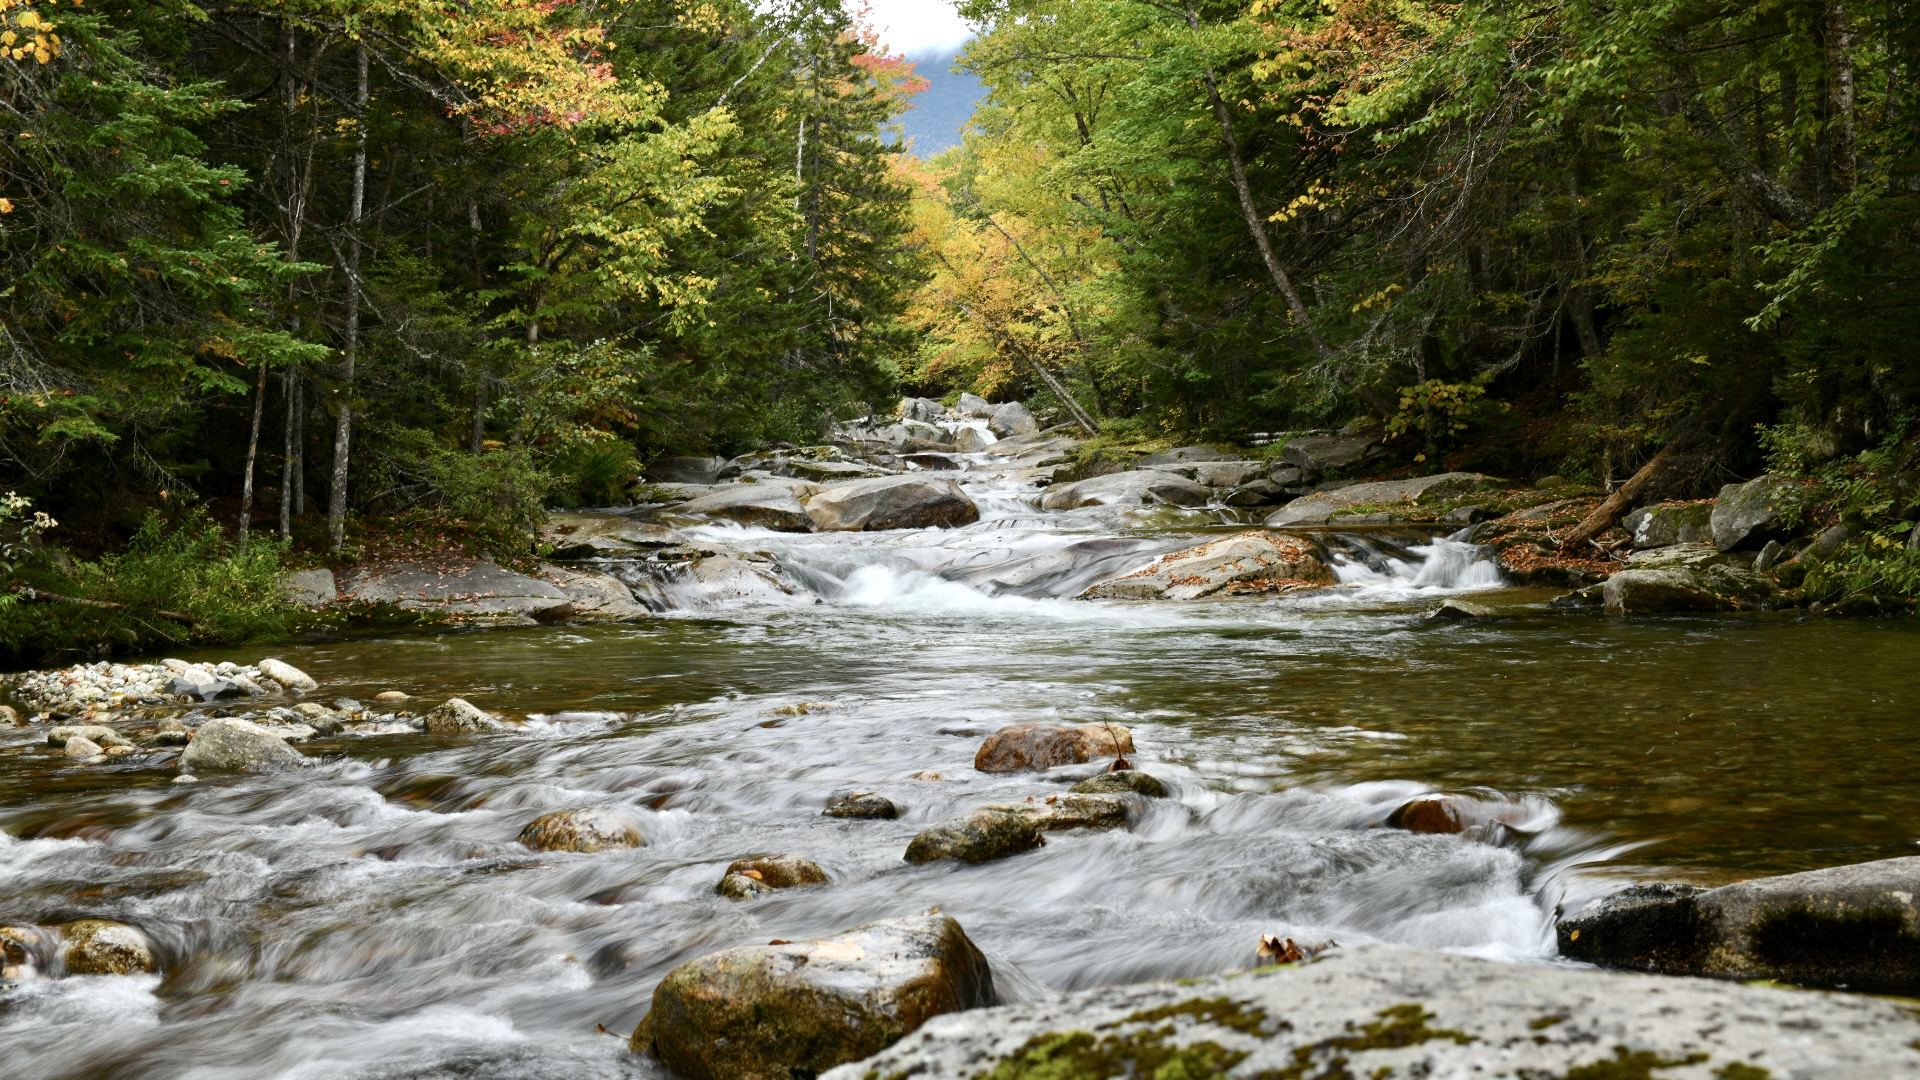 River flowing directly toward viewer in center of image. River lined with autumn trees. Yellows, oranges, greens. 2021. Taryn Okesson. Digital Photography. White Mountain National Forest, New Hampshire.